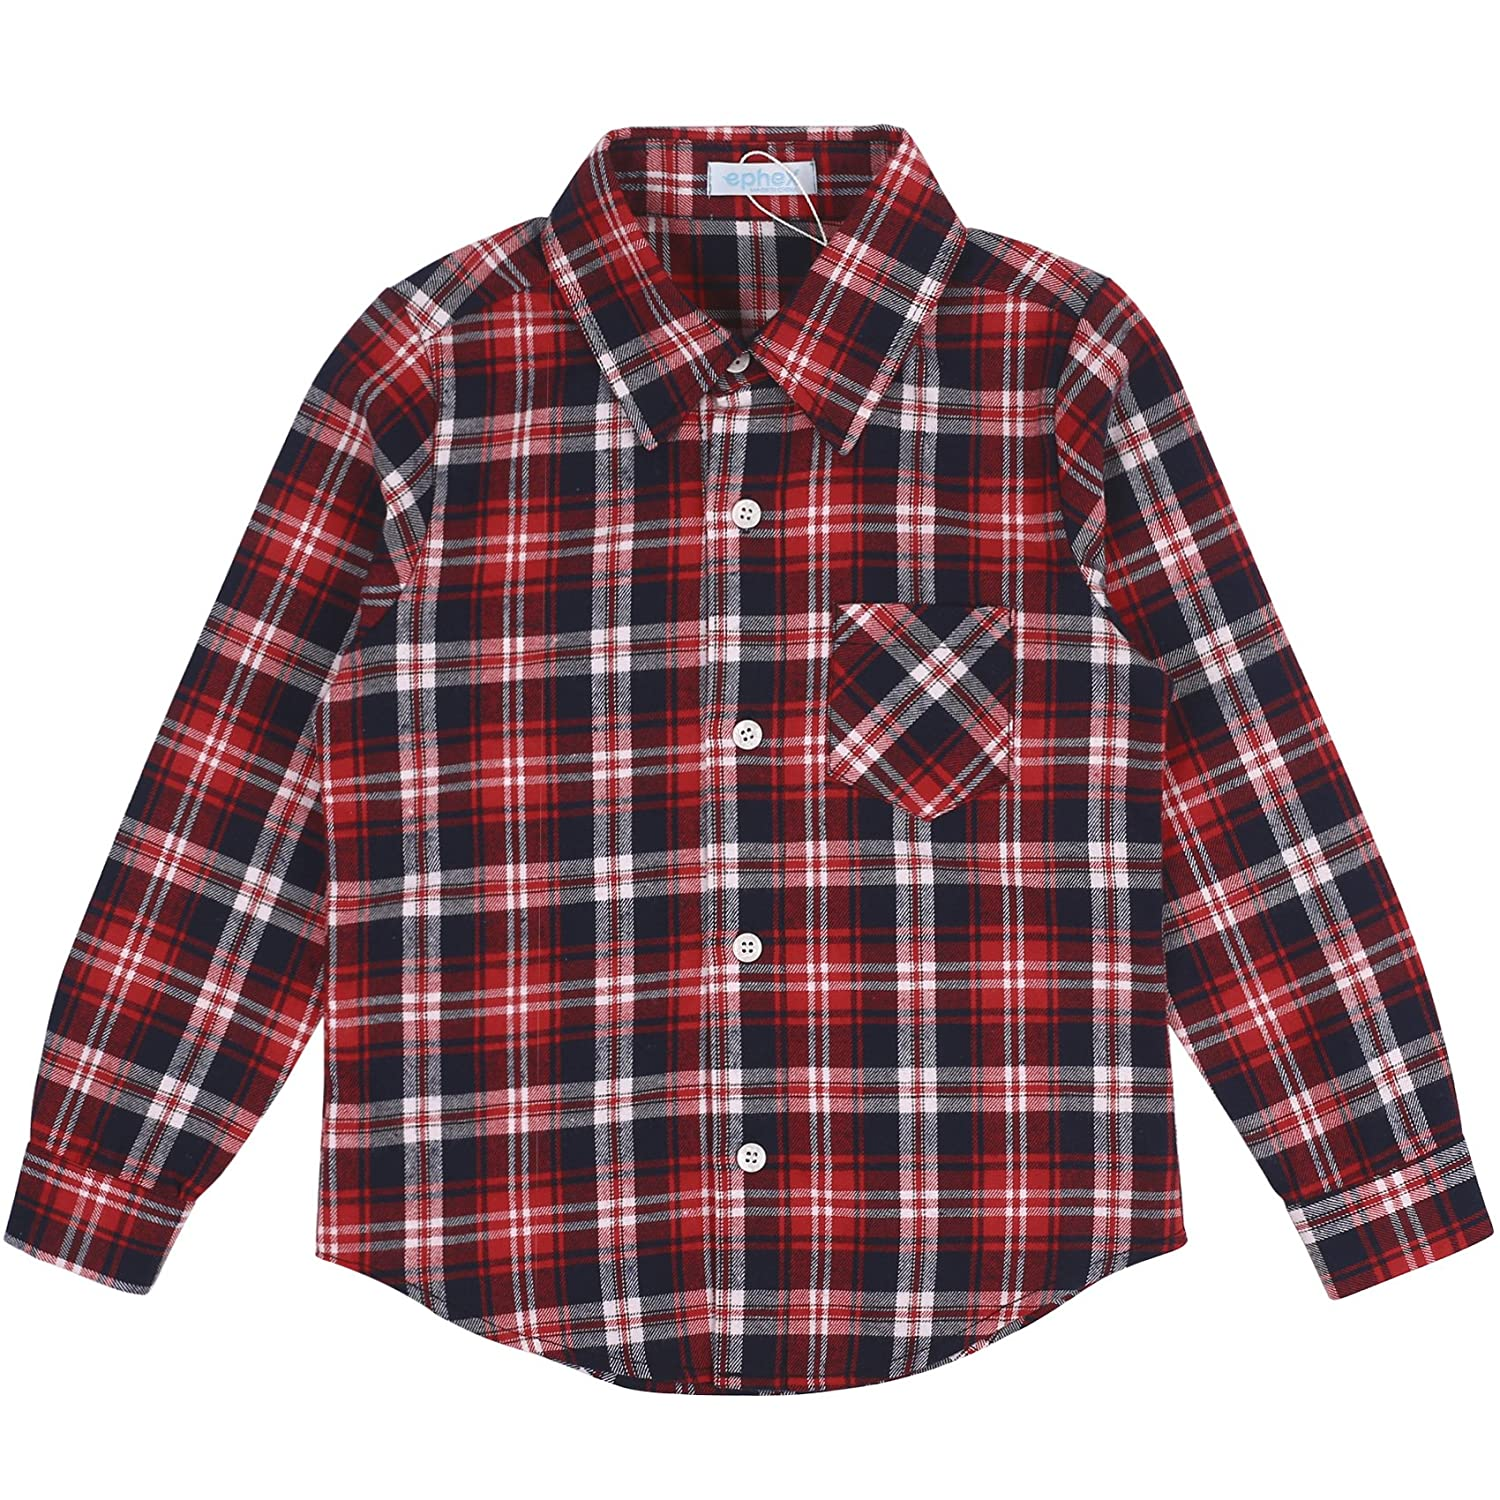 ephex Little Kids Cotton Long Sleeve Button Down Plaid Shirt 1-5T